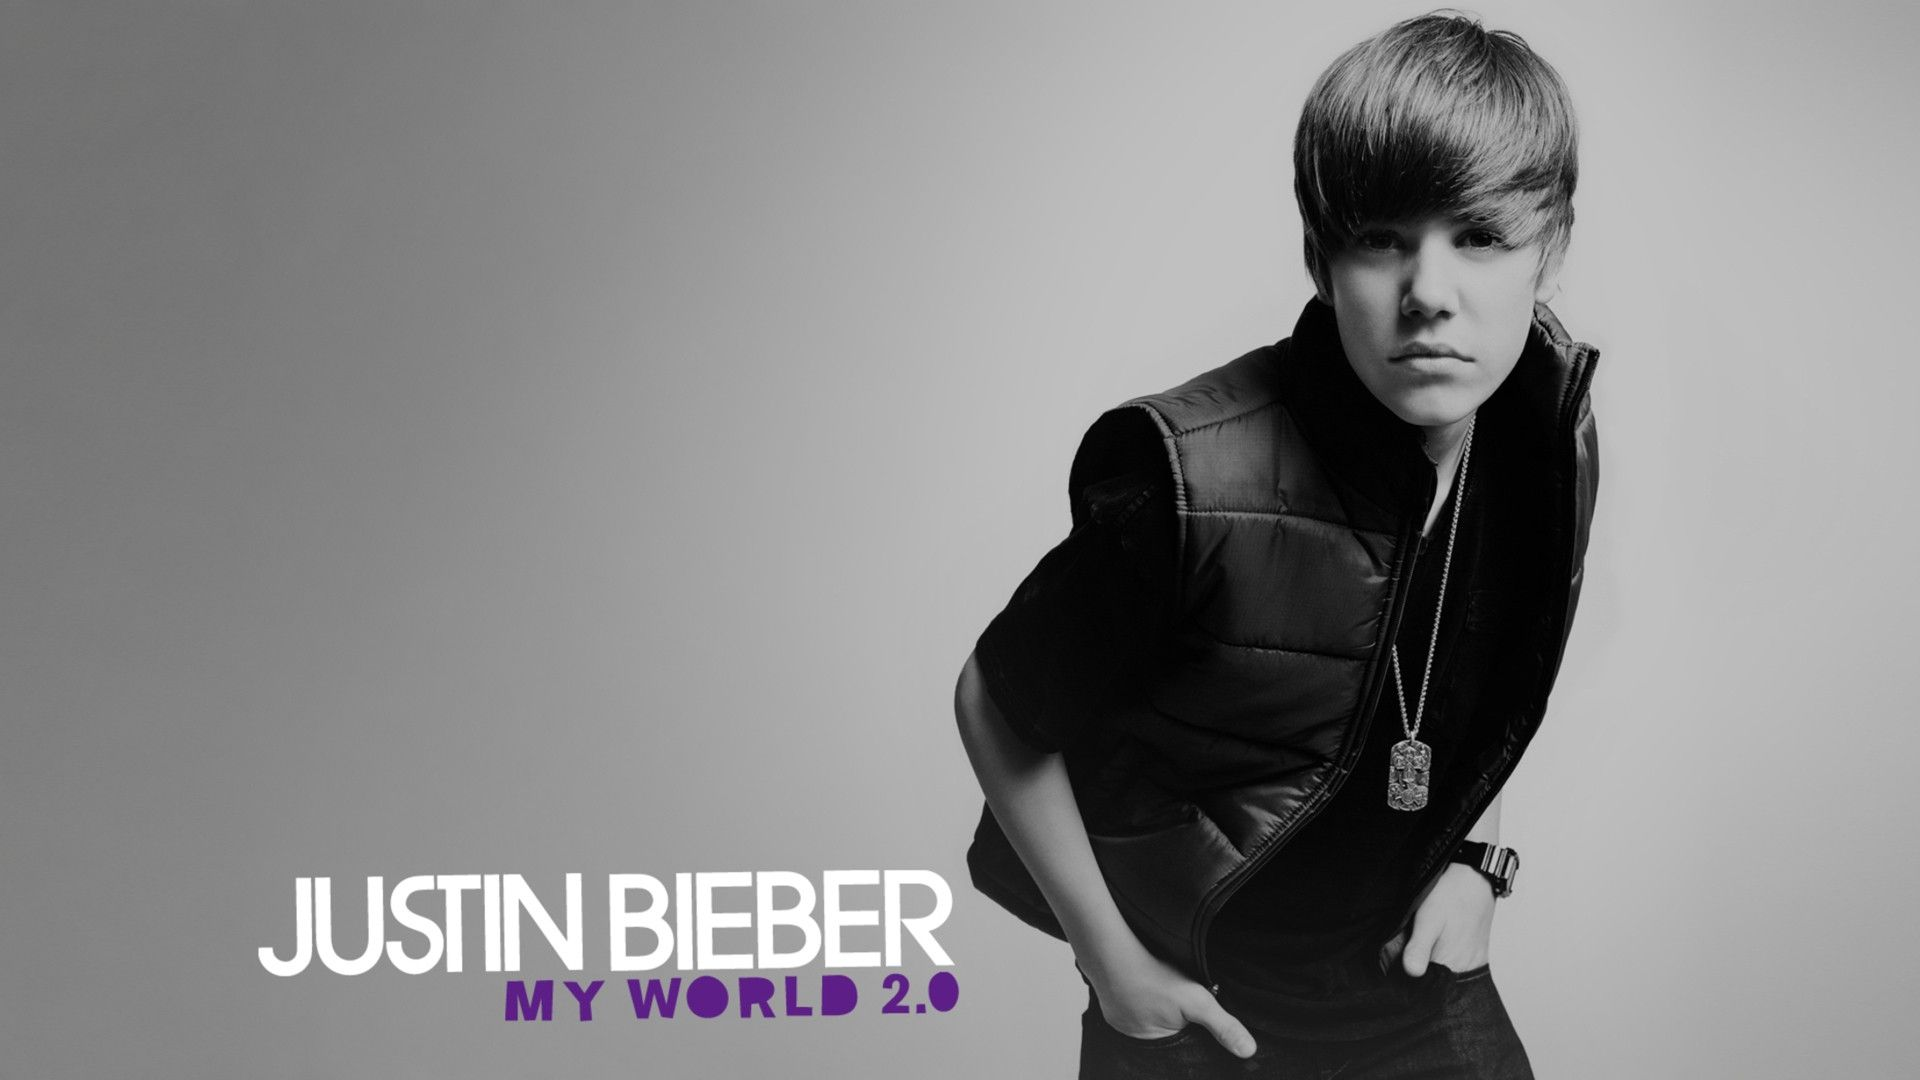 Justin Bieber Full HD Wallpaper